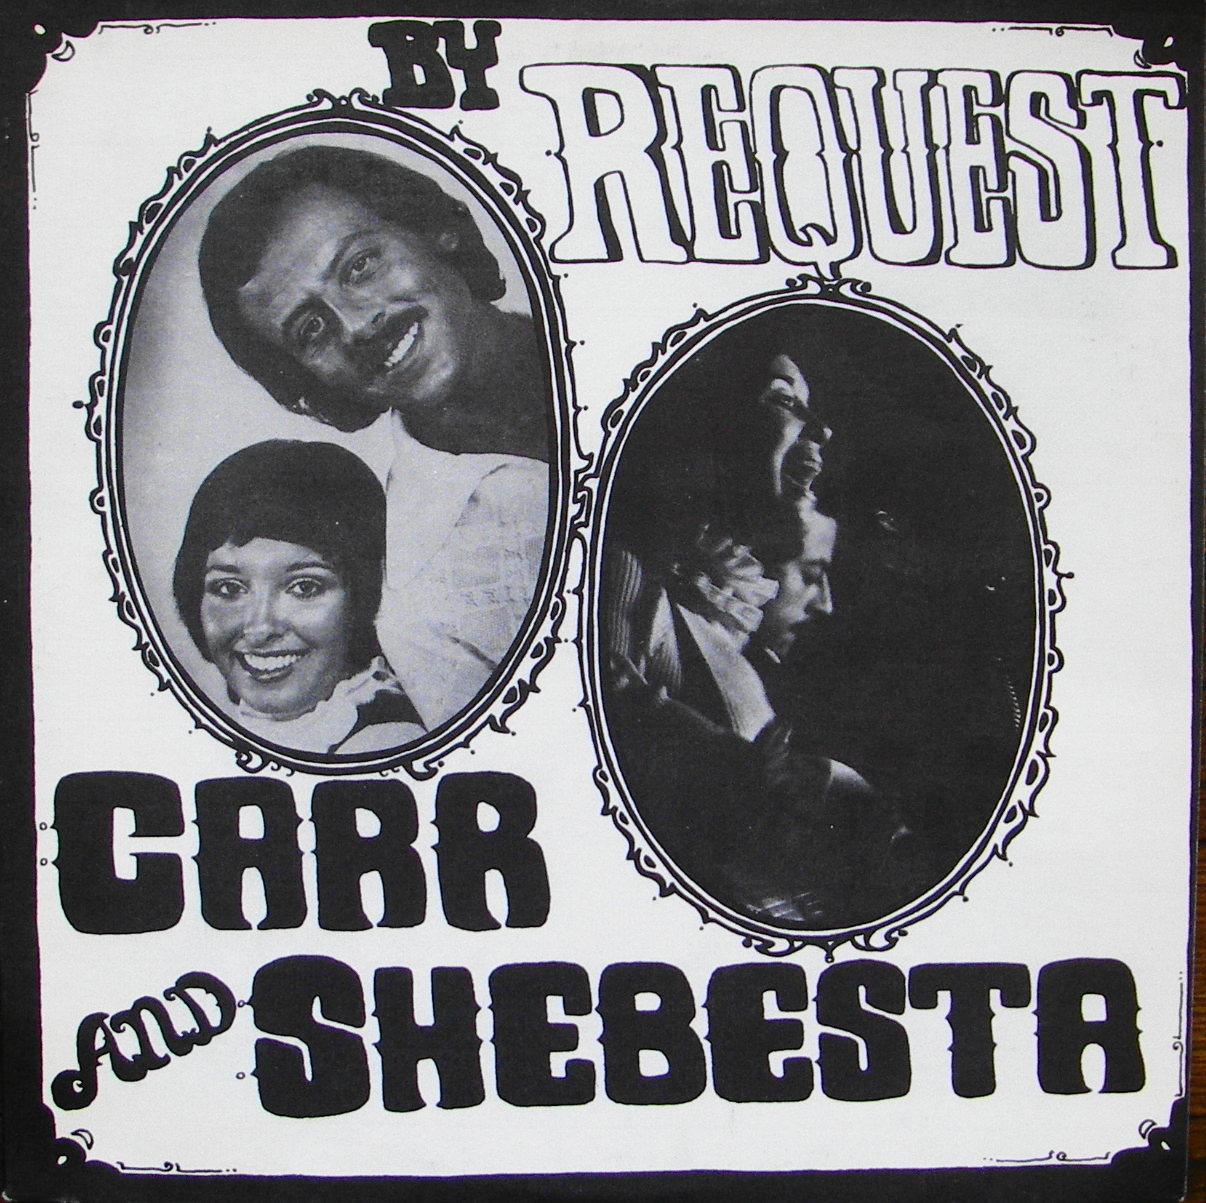 Carr and Shebesta By Request